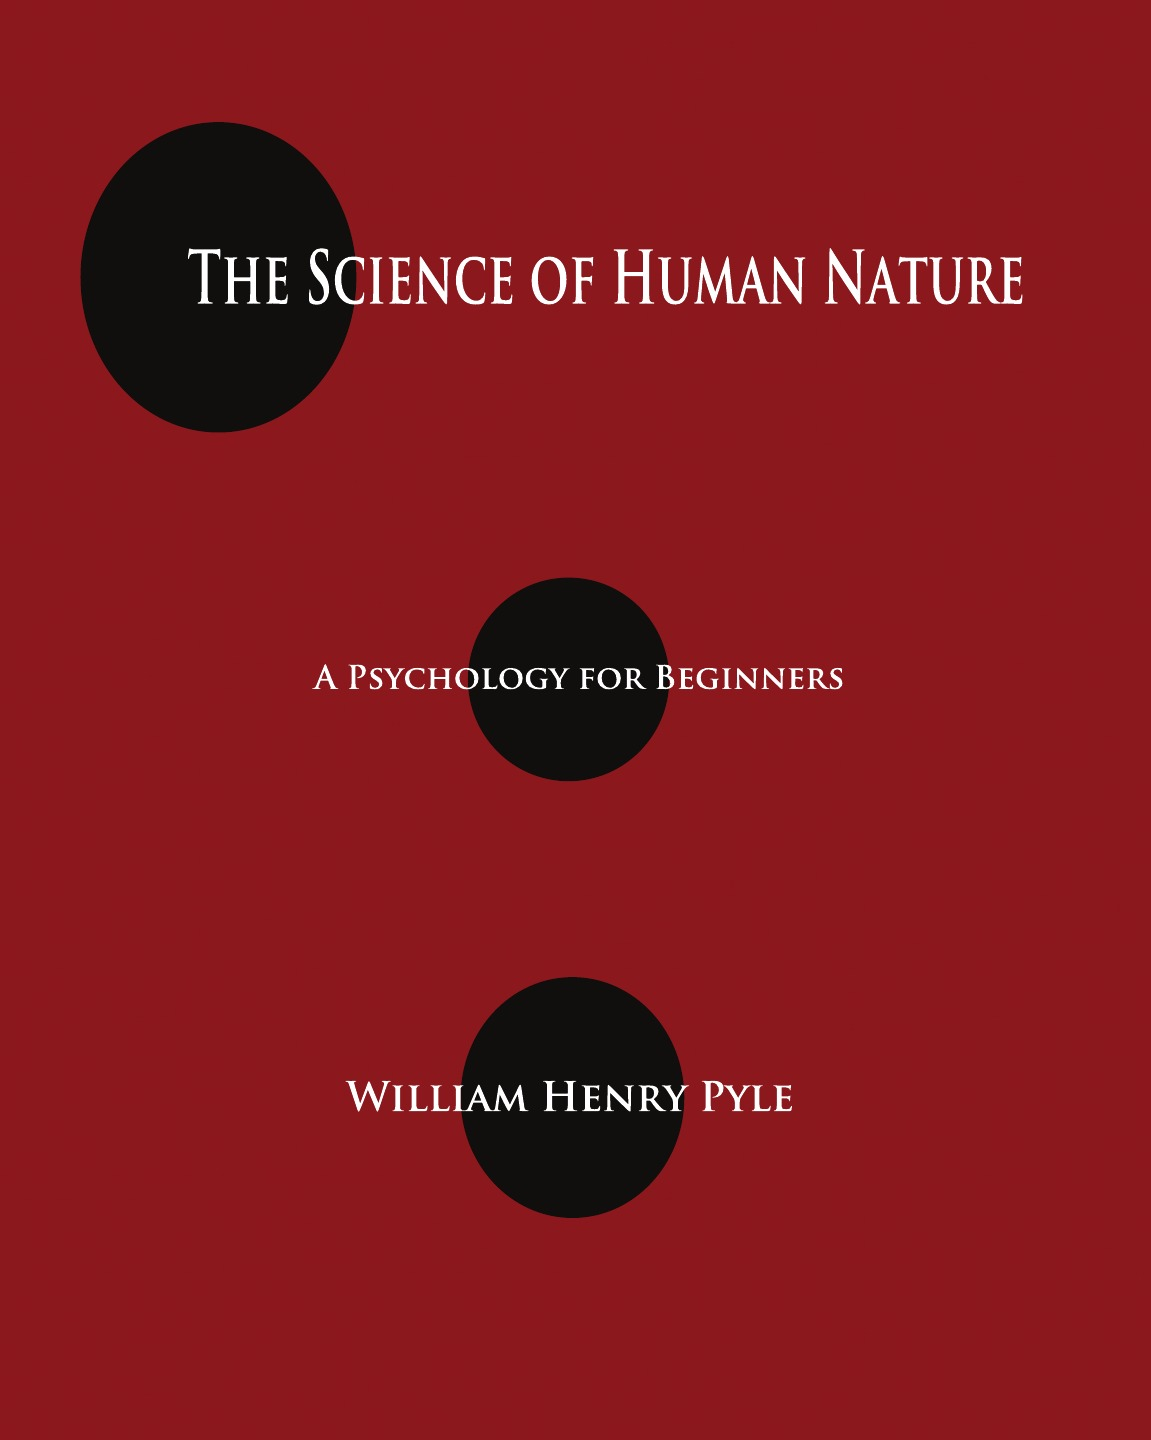 купить William Henry Pyle The Science of Human Nature. A Psychology for Beginners онлайн